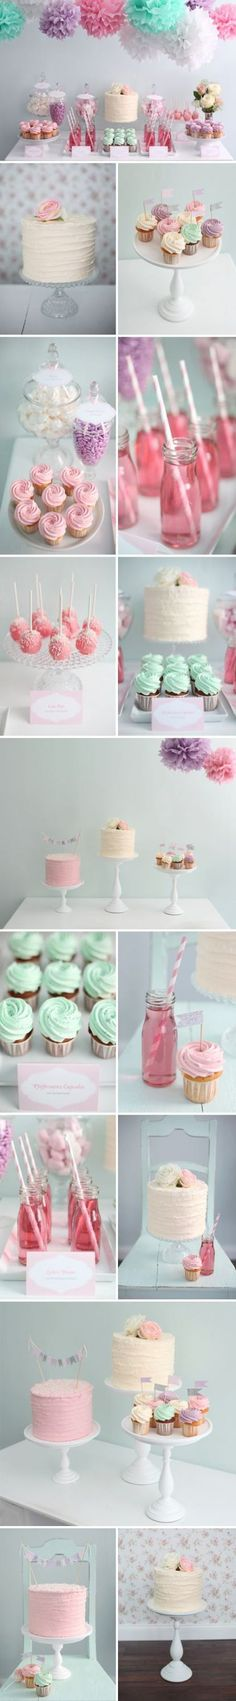 Best cupcakes ideas for baby shower girl birthday parties Ideas Baby Shower, Girl Shower, Bridal Shower, Shower Cake, Shower Party, Baby Birthday, 1st Birthday Parties, Tea Parties, Birthday Table